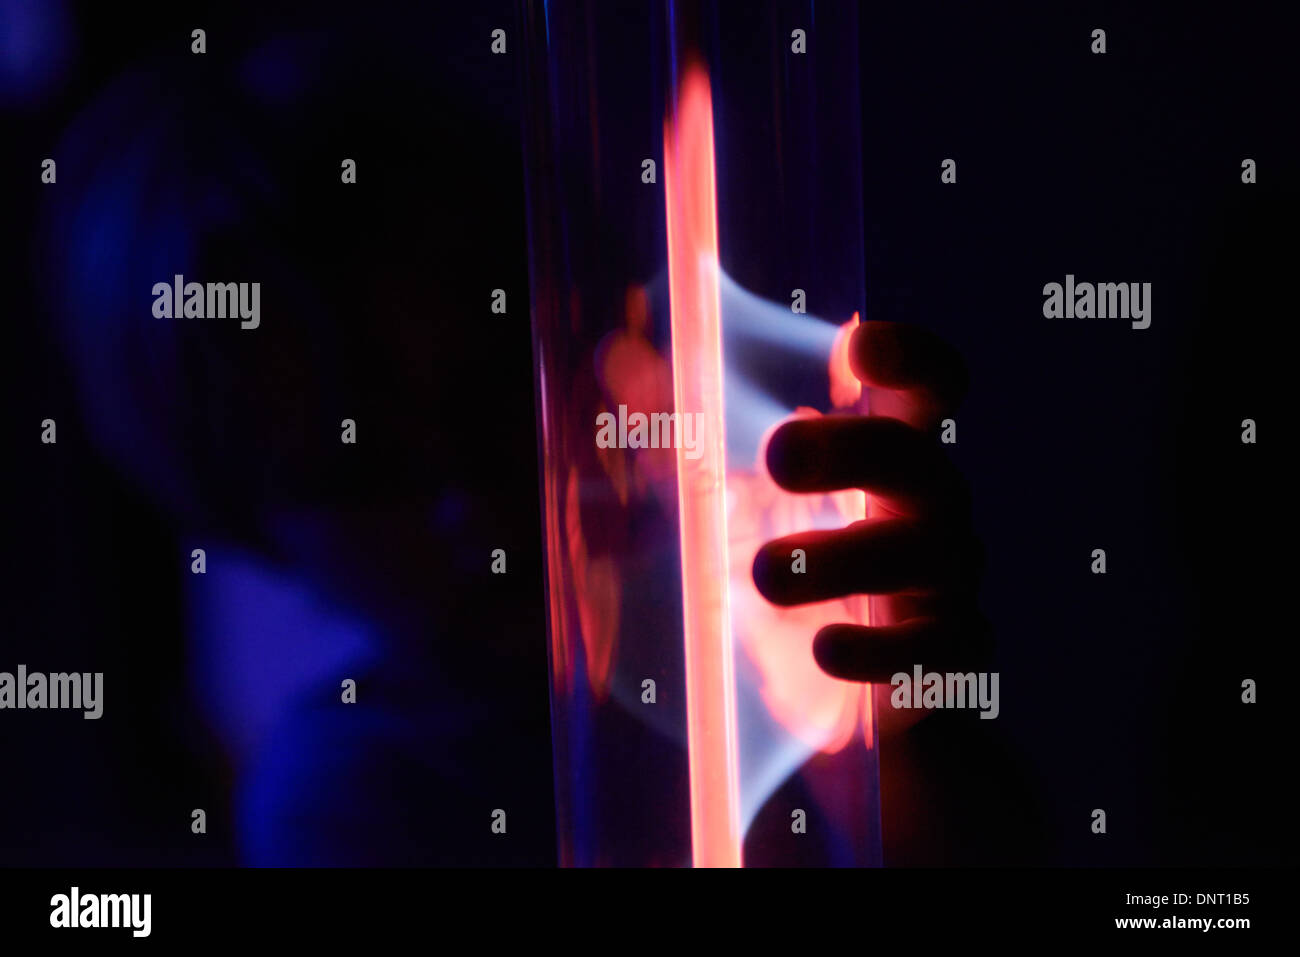 Electricity Arcs from a Plasma Ball - Tube - Globe - Lamp when child boy finger touch it - Stock Image